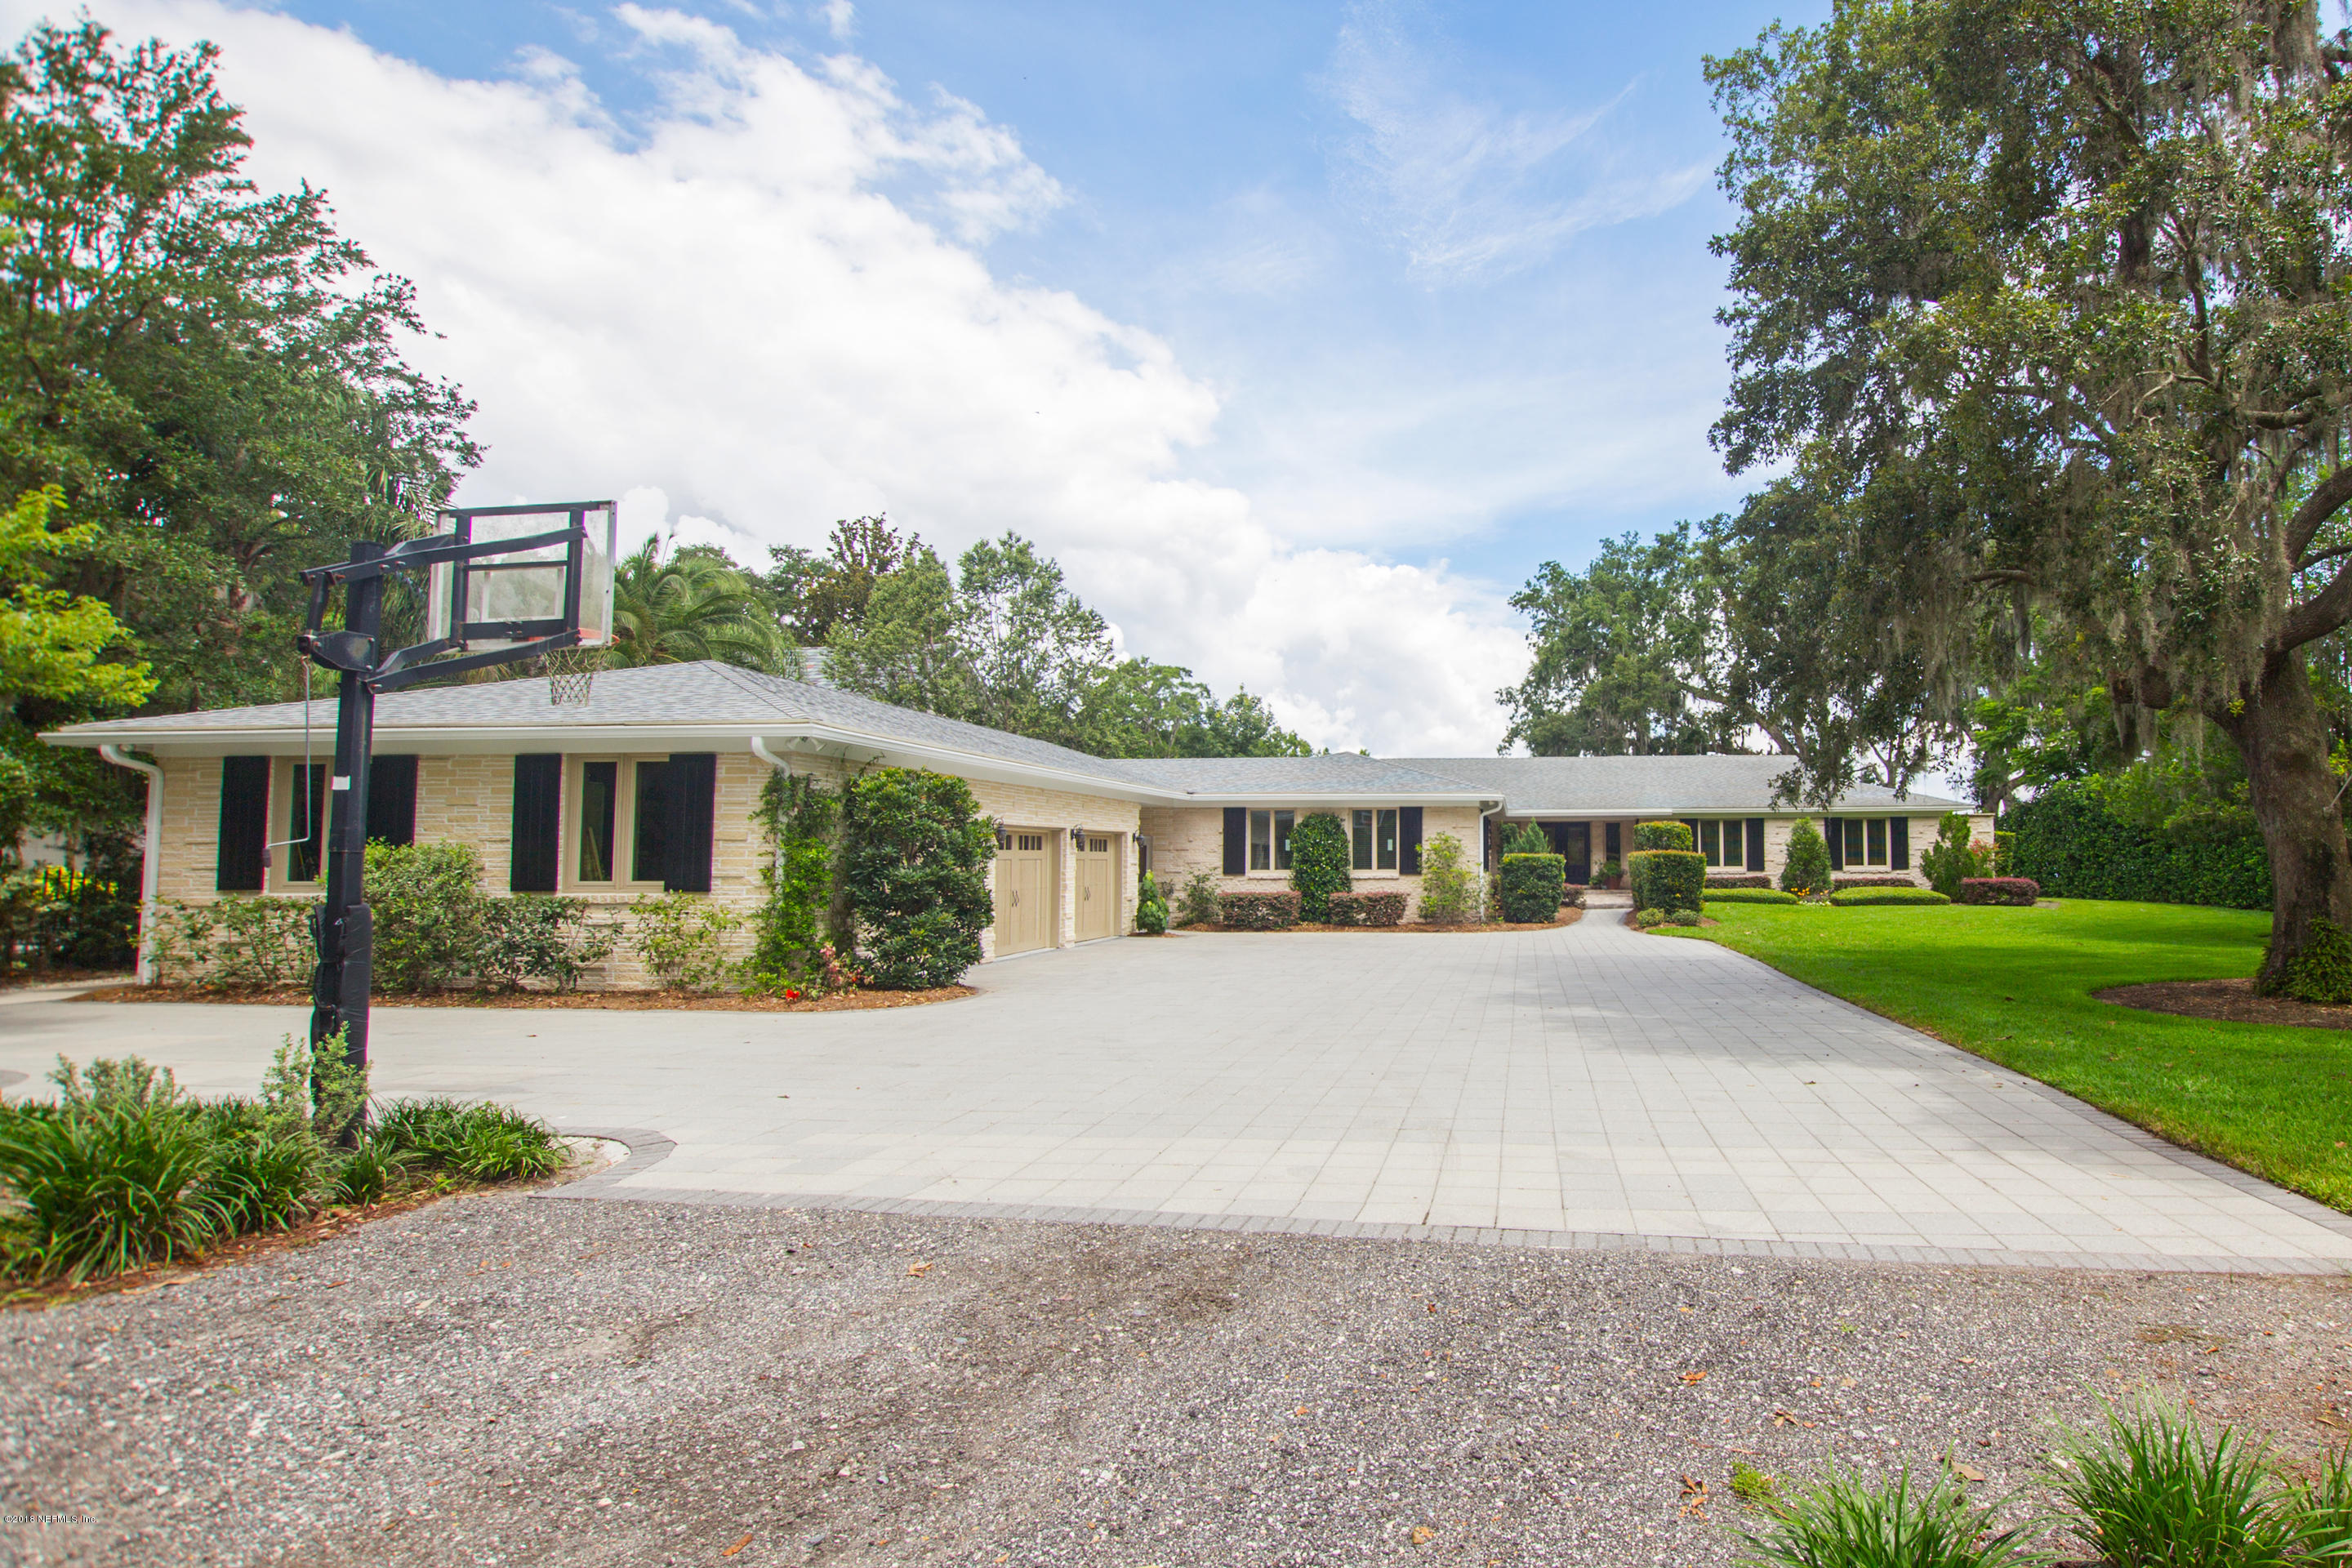 12322 MANDARIN, JACKSONVILLE, FLORIDA 32223, 4 Bedrooms Bedrooms, ,3 BathroomsBathrooms,Residential - single family,For sale,MANDARIN,940885